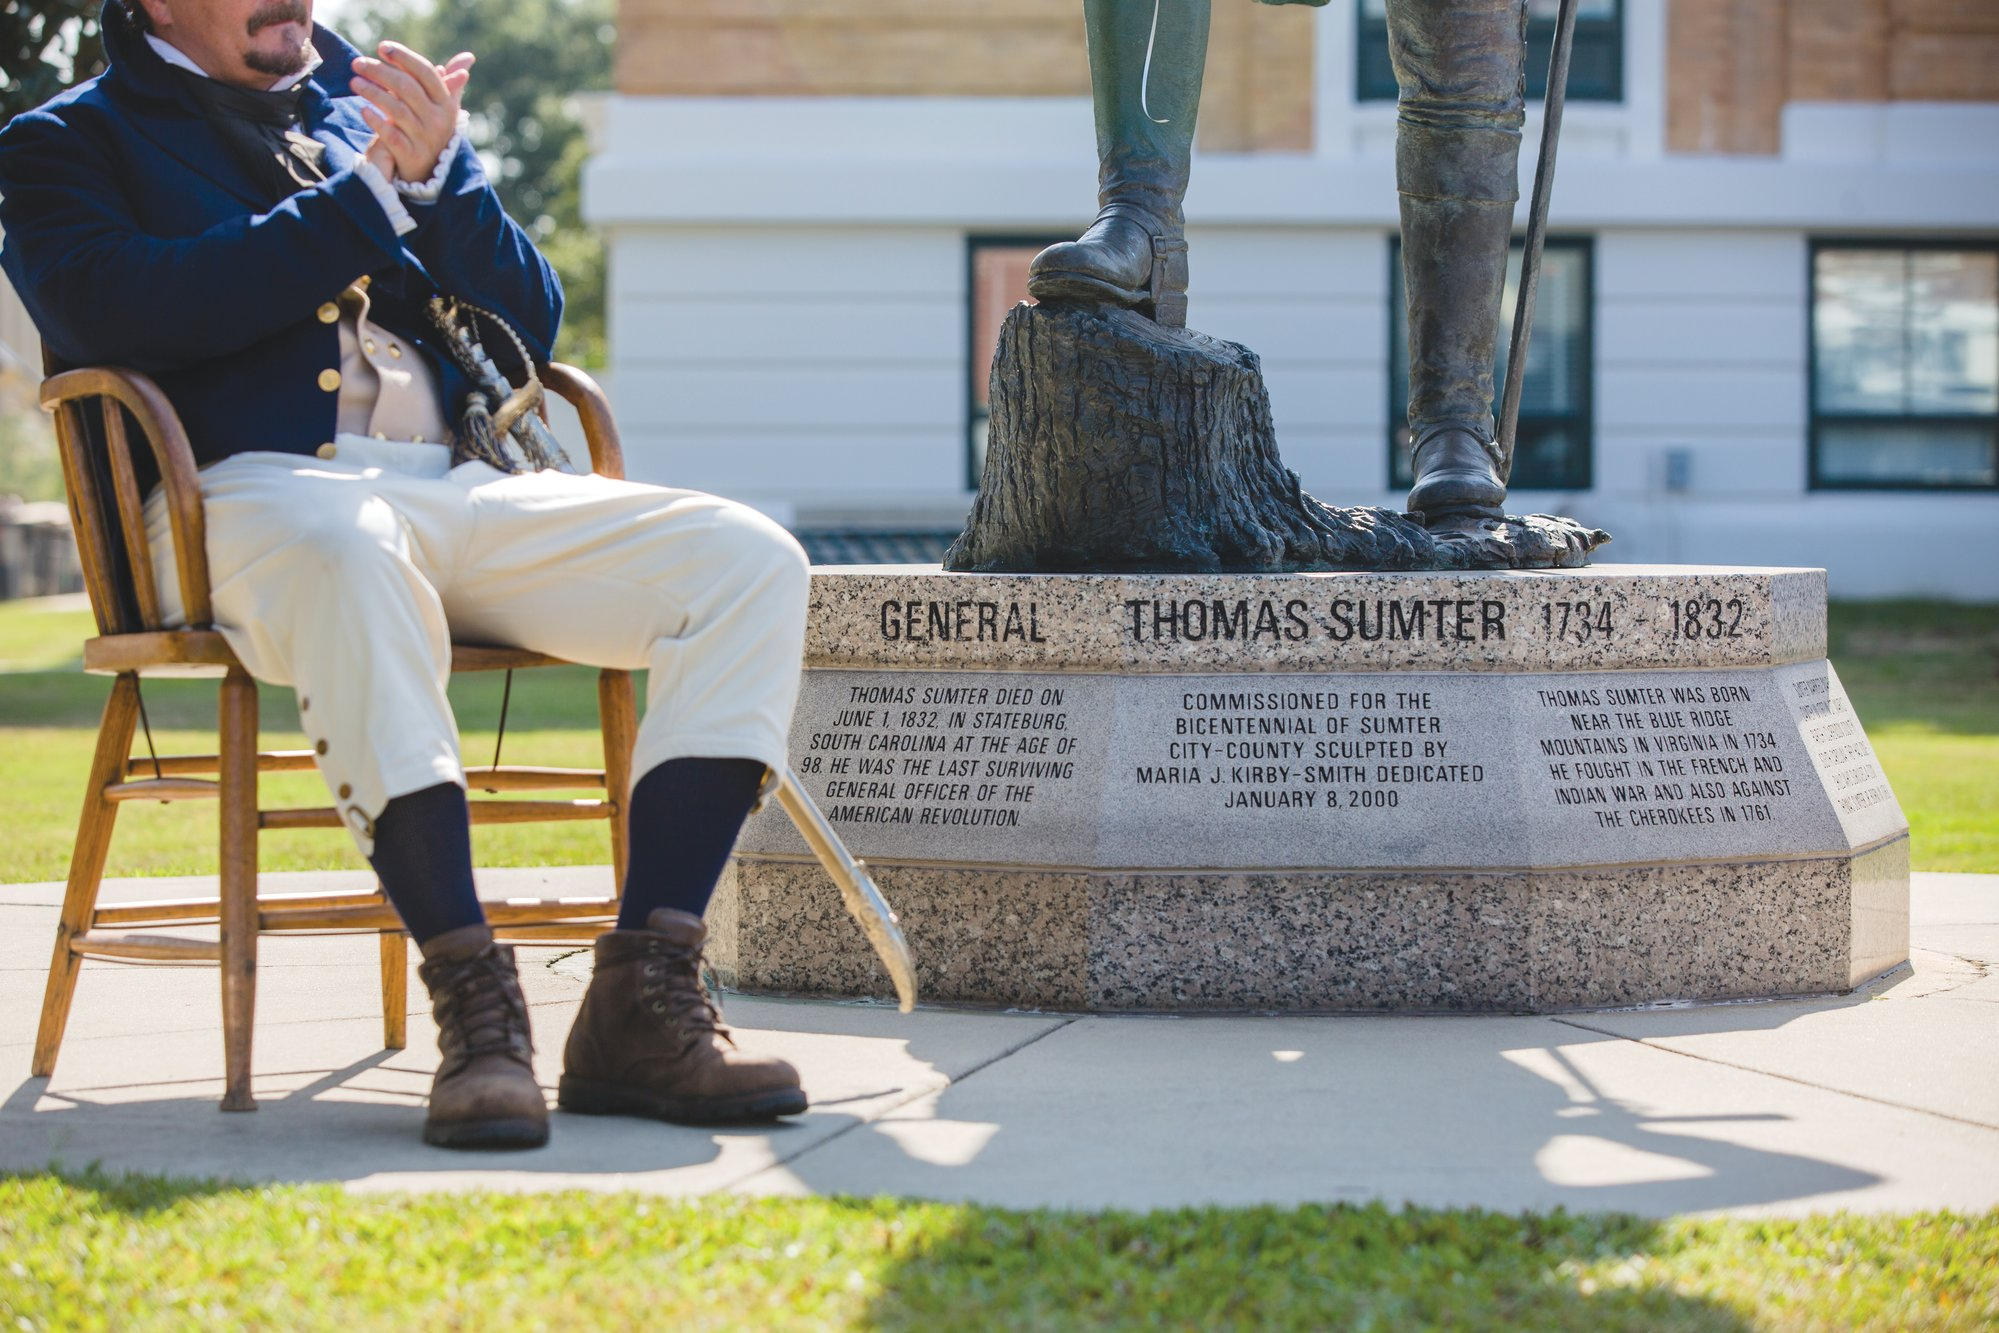 Sumter County Communications Coordinator Joe Perry, portraying Gen. Thomas Sumter, is seen next to the city's statue of the Revolutionary War soldier and Congressman during a celebration of Sumter's birthday on Wednesday. Community members, some in period dress, gathered to celebrate the man who is our city's namesake.